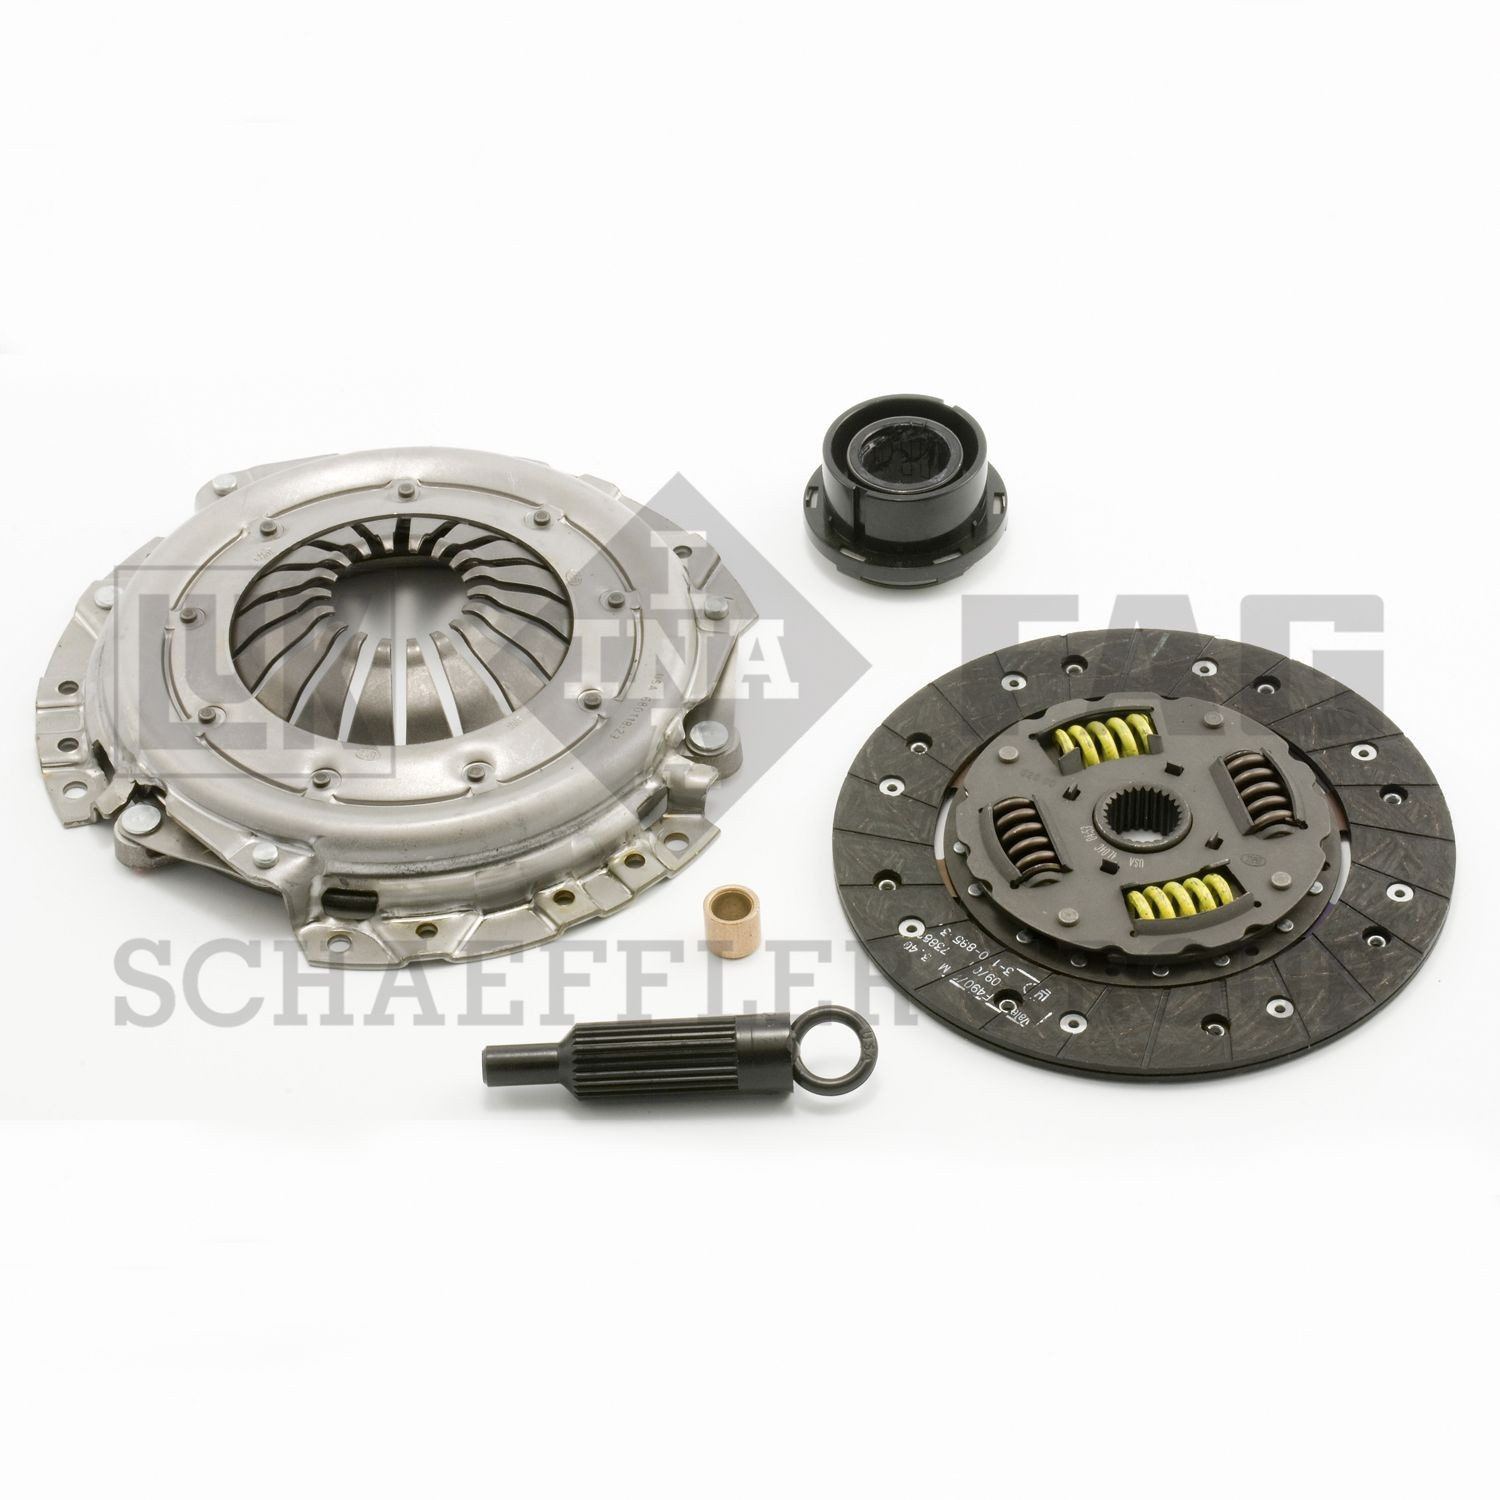 1998 chevrolet s10 clutch kit autopartskart 1998 chevrolet s10 clutch kit lk 04 155 publicscrutiny Gallery